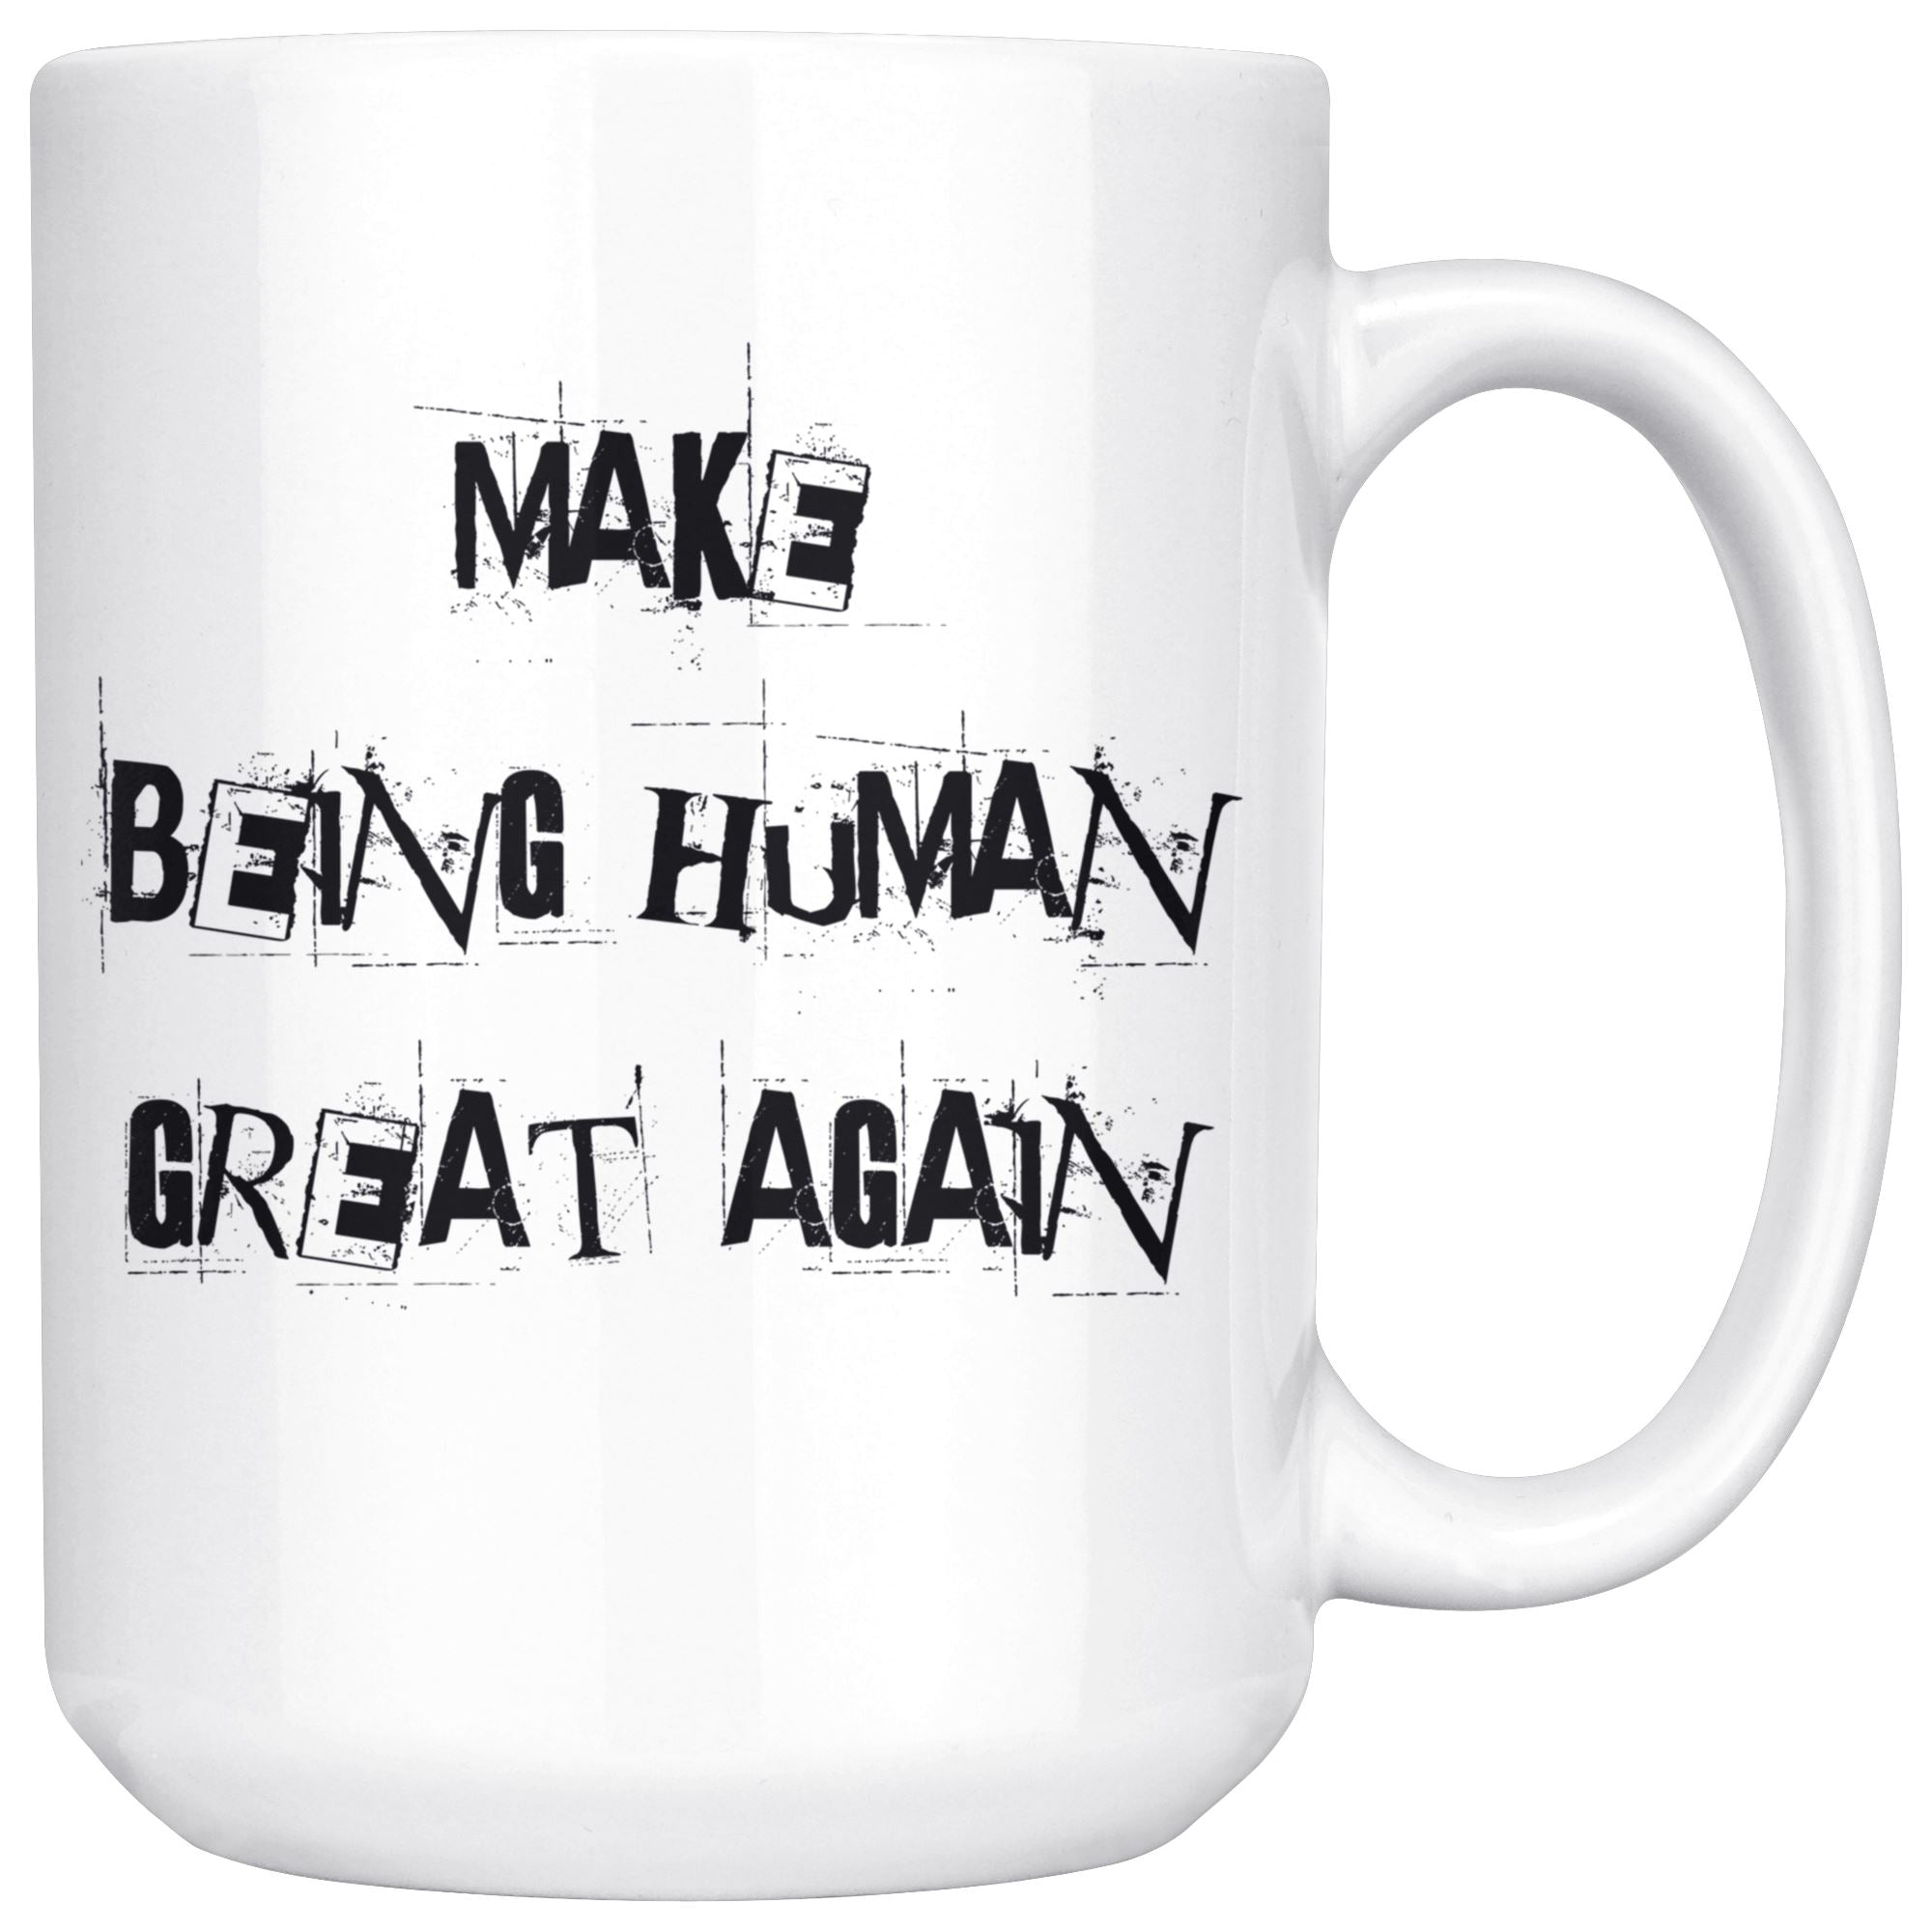 Make Being Human Great Again • Grunge Style 15oz. Coffee Mug Drinkware teelaunch Being Human